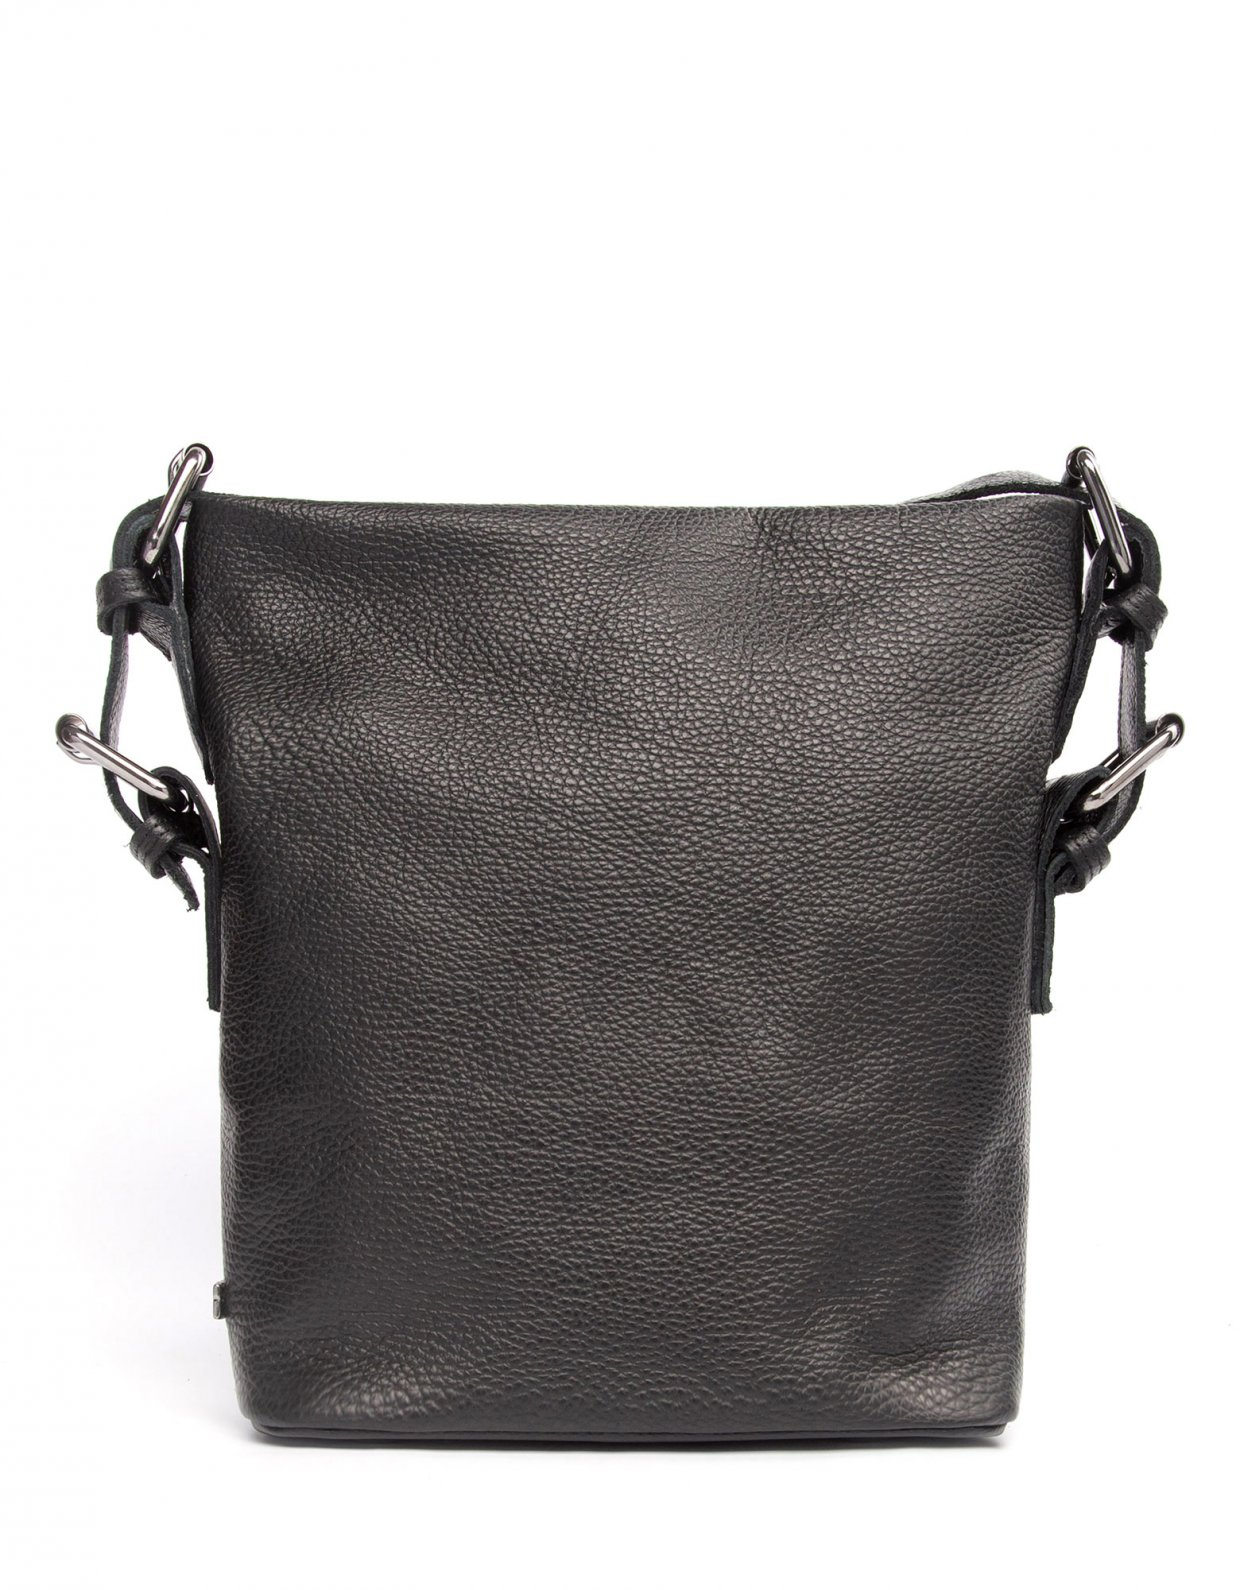 Elena Athanasiou Day to evening pouch large black